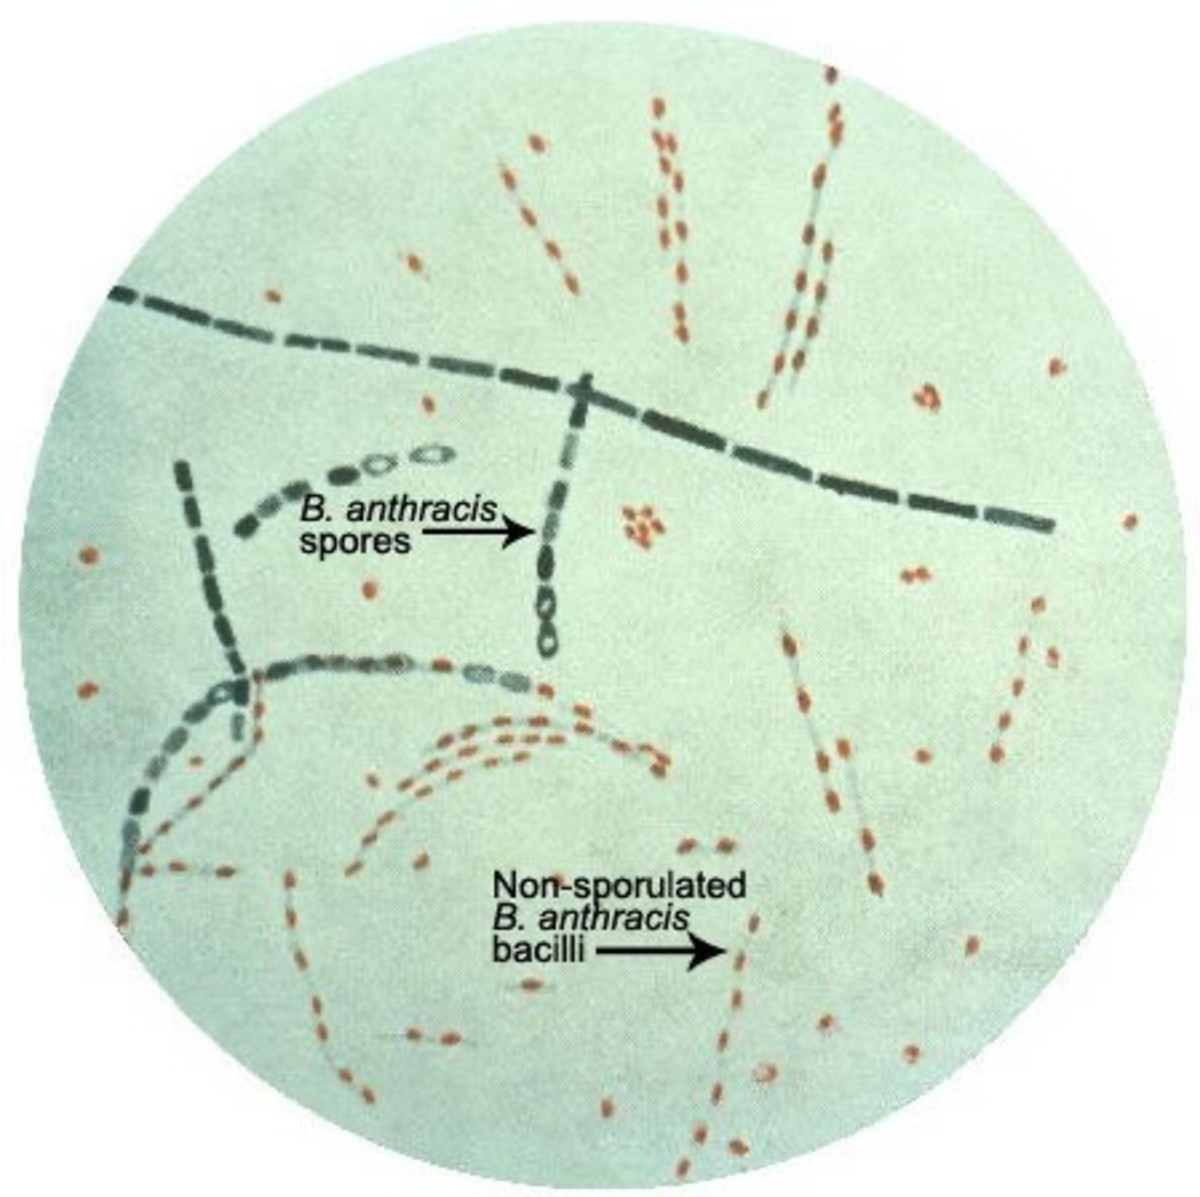 Microscopic image of Bacillus anthracis